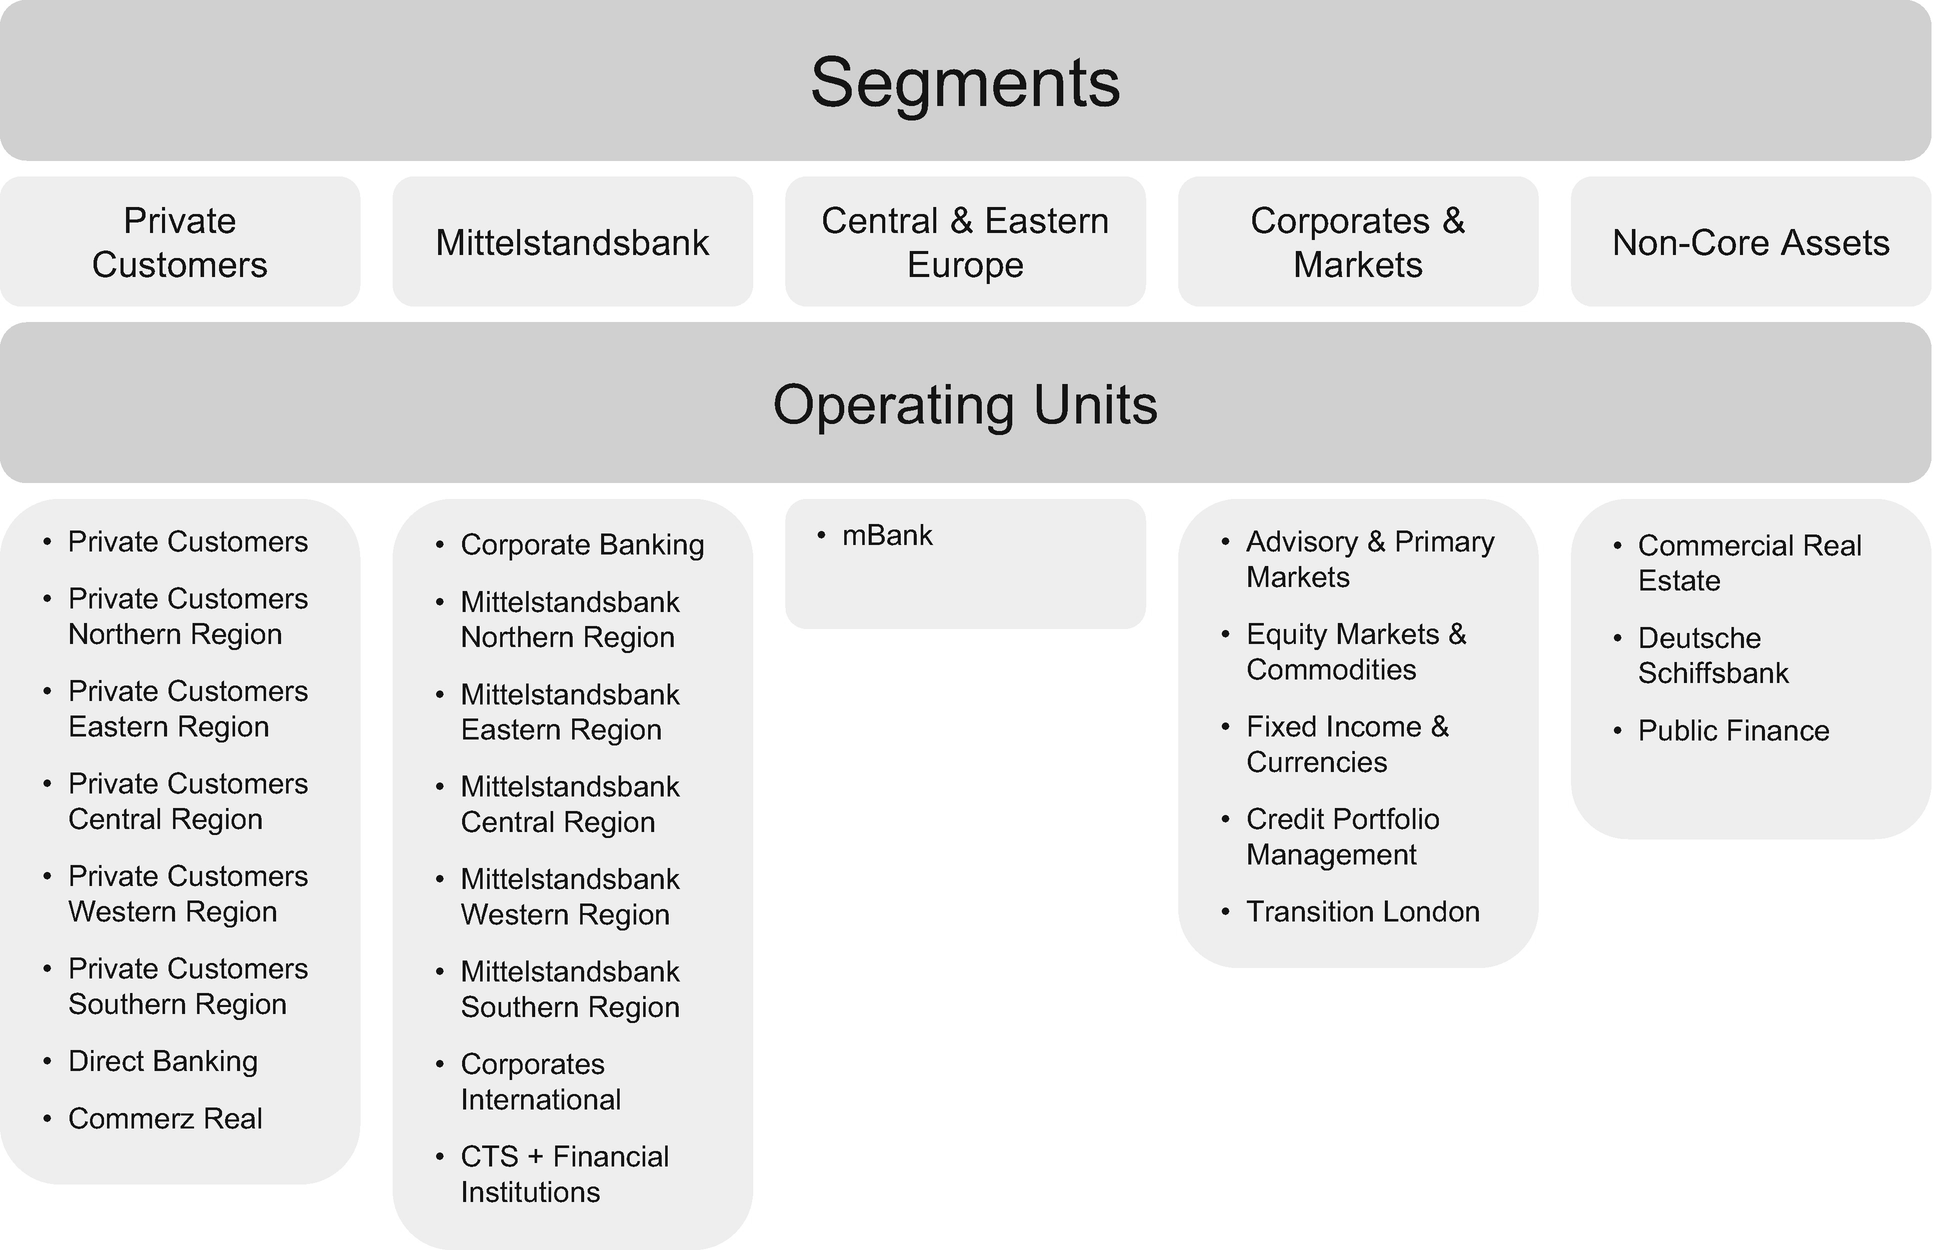 Case: UBS—Acquisition of Commerzbank AG as a Possible Growth